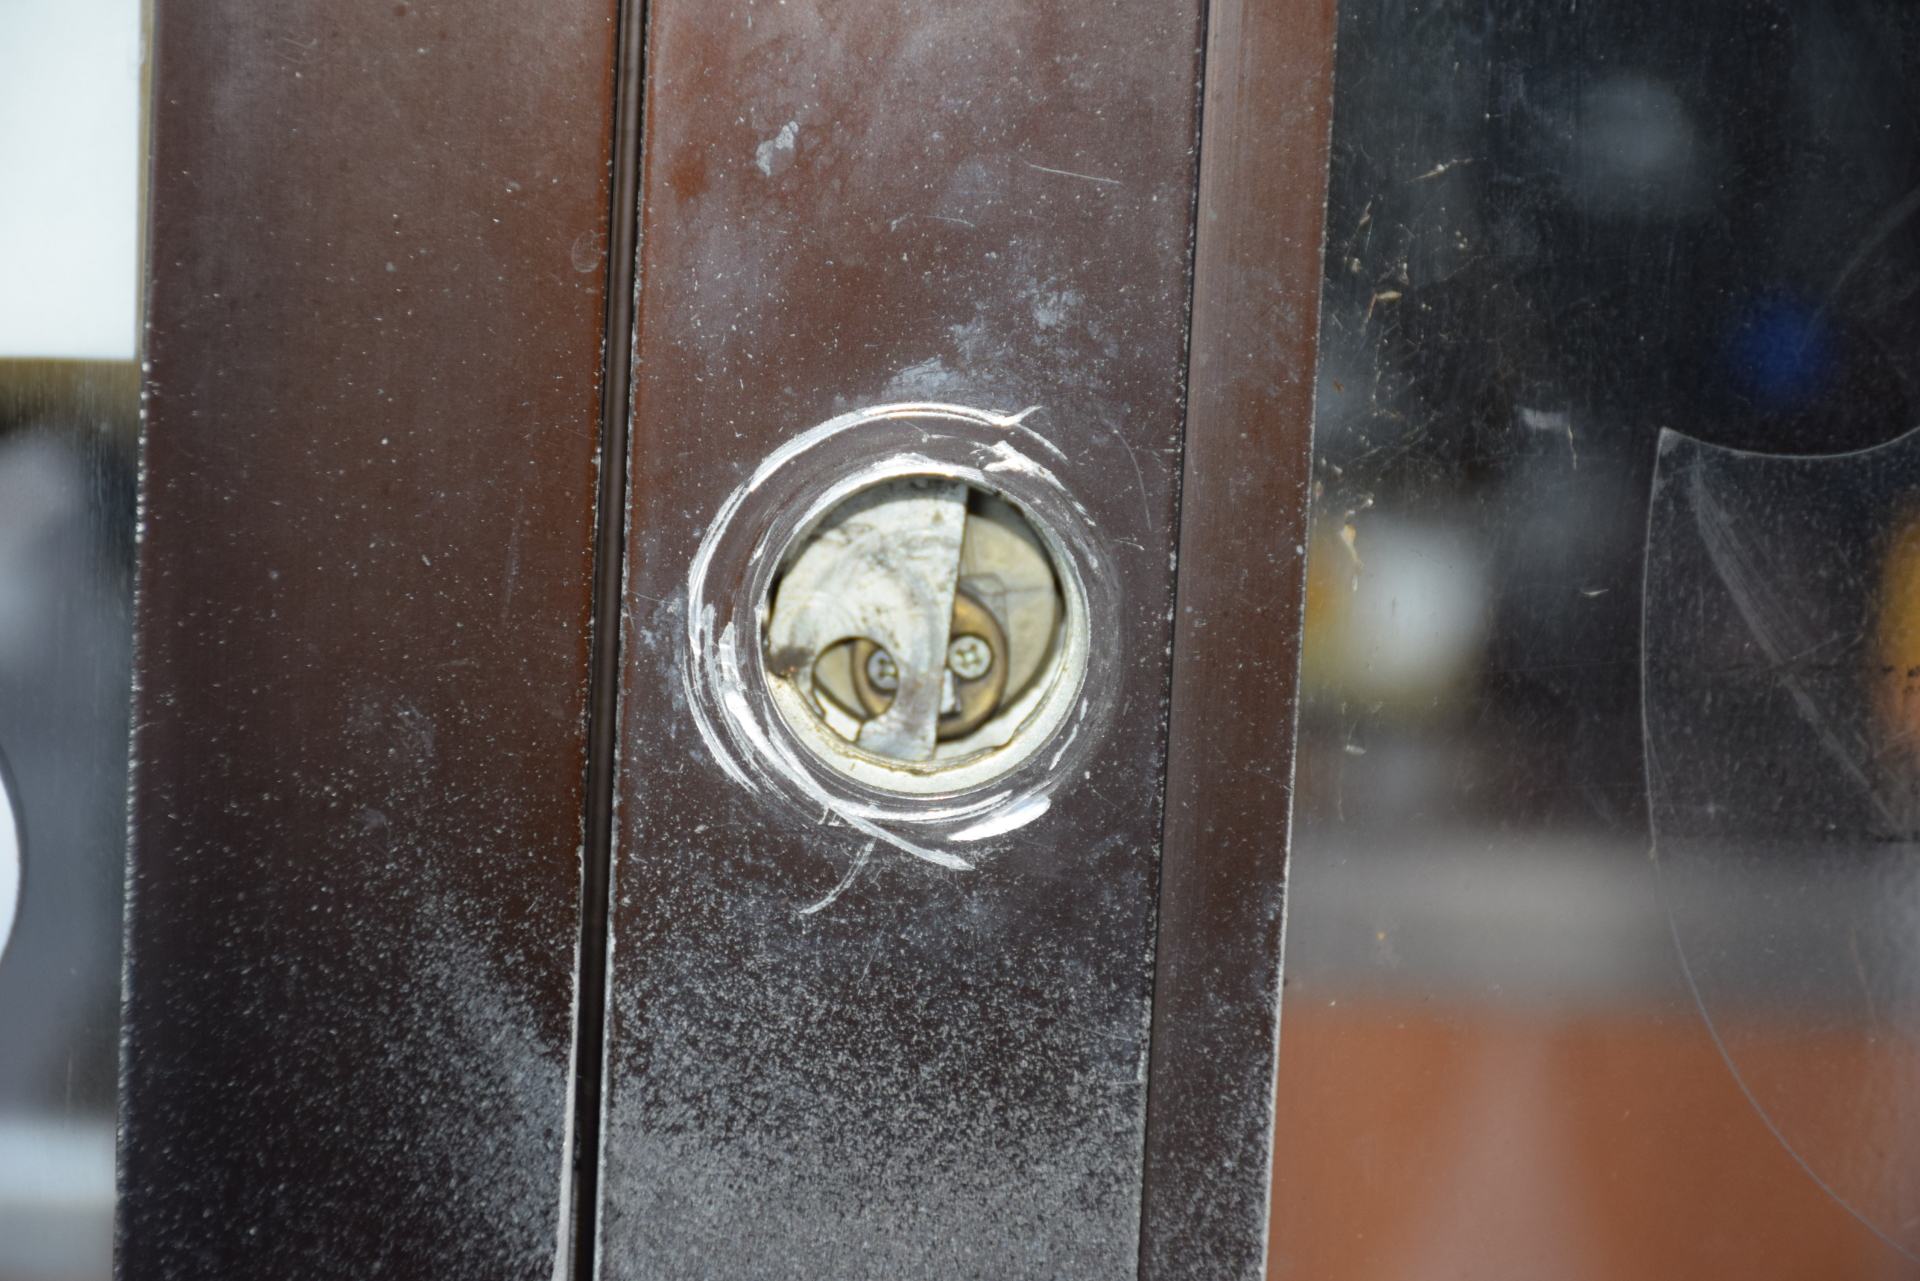 Businesses encouraged to take steps to prevent burglaries